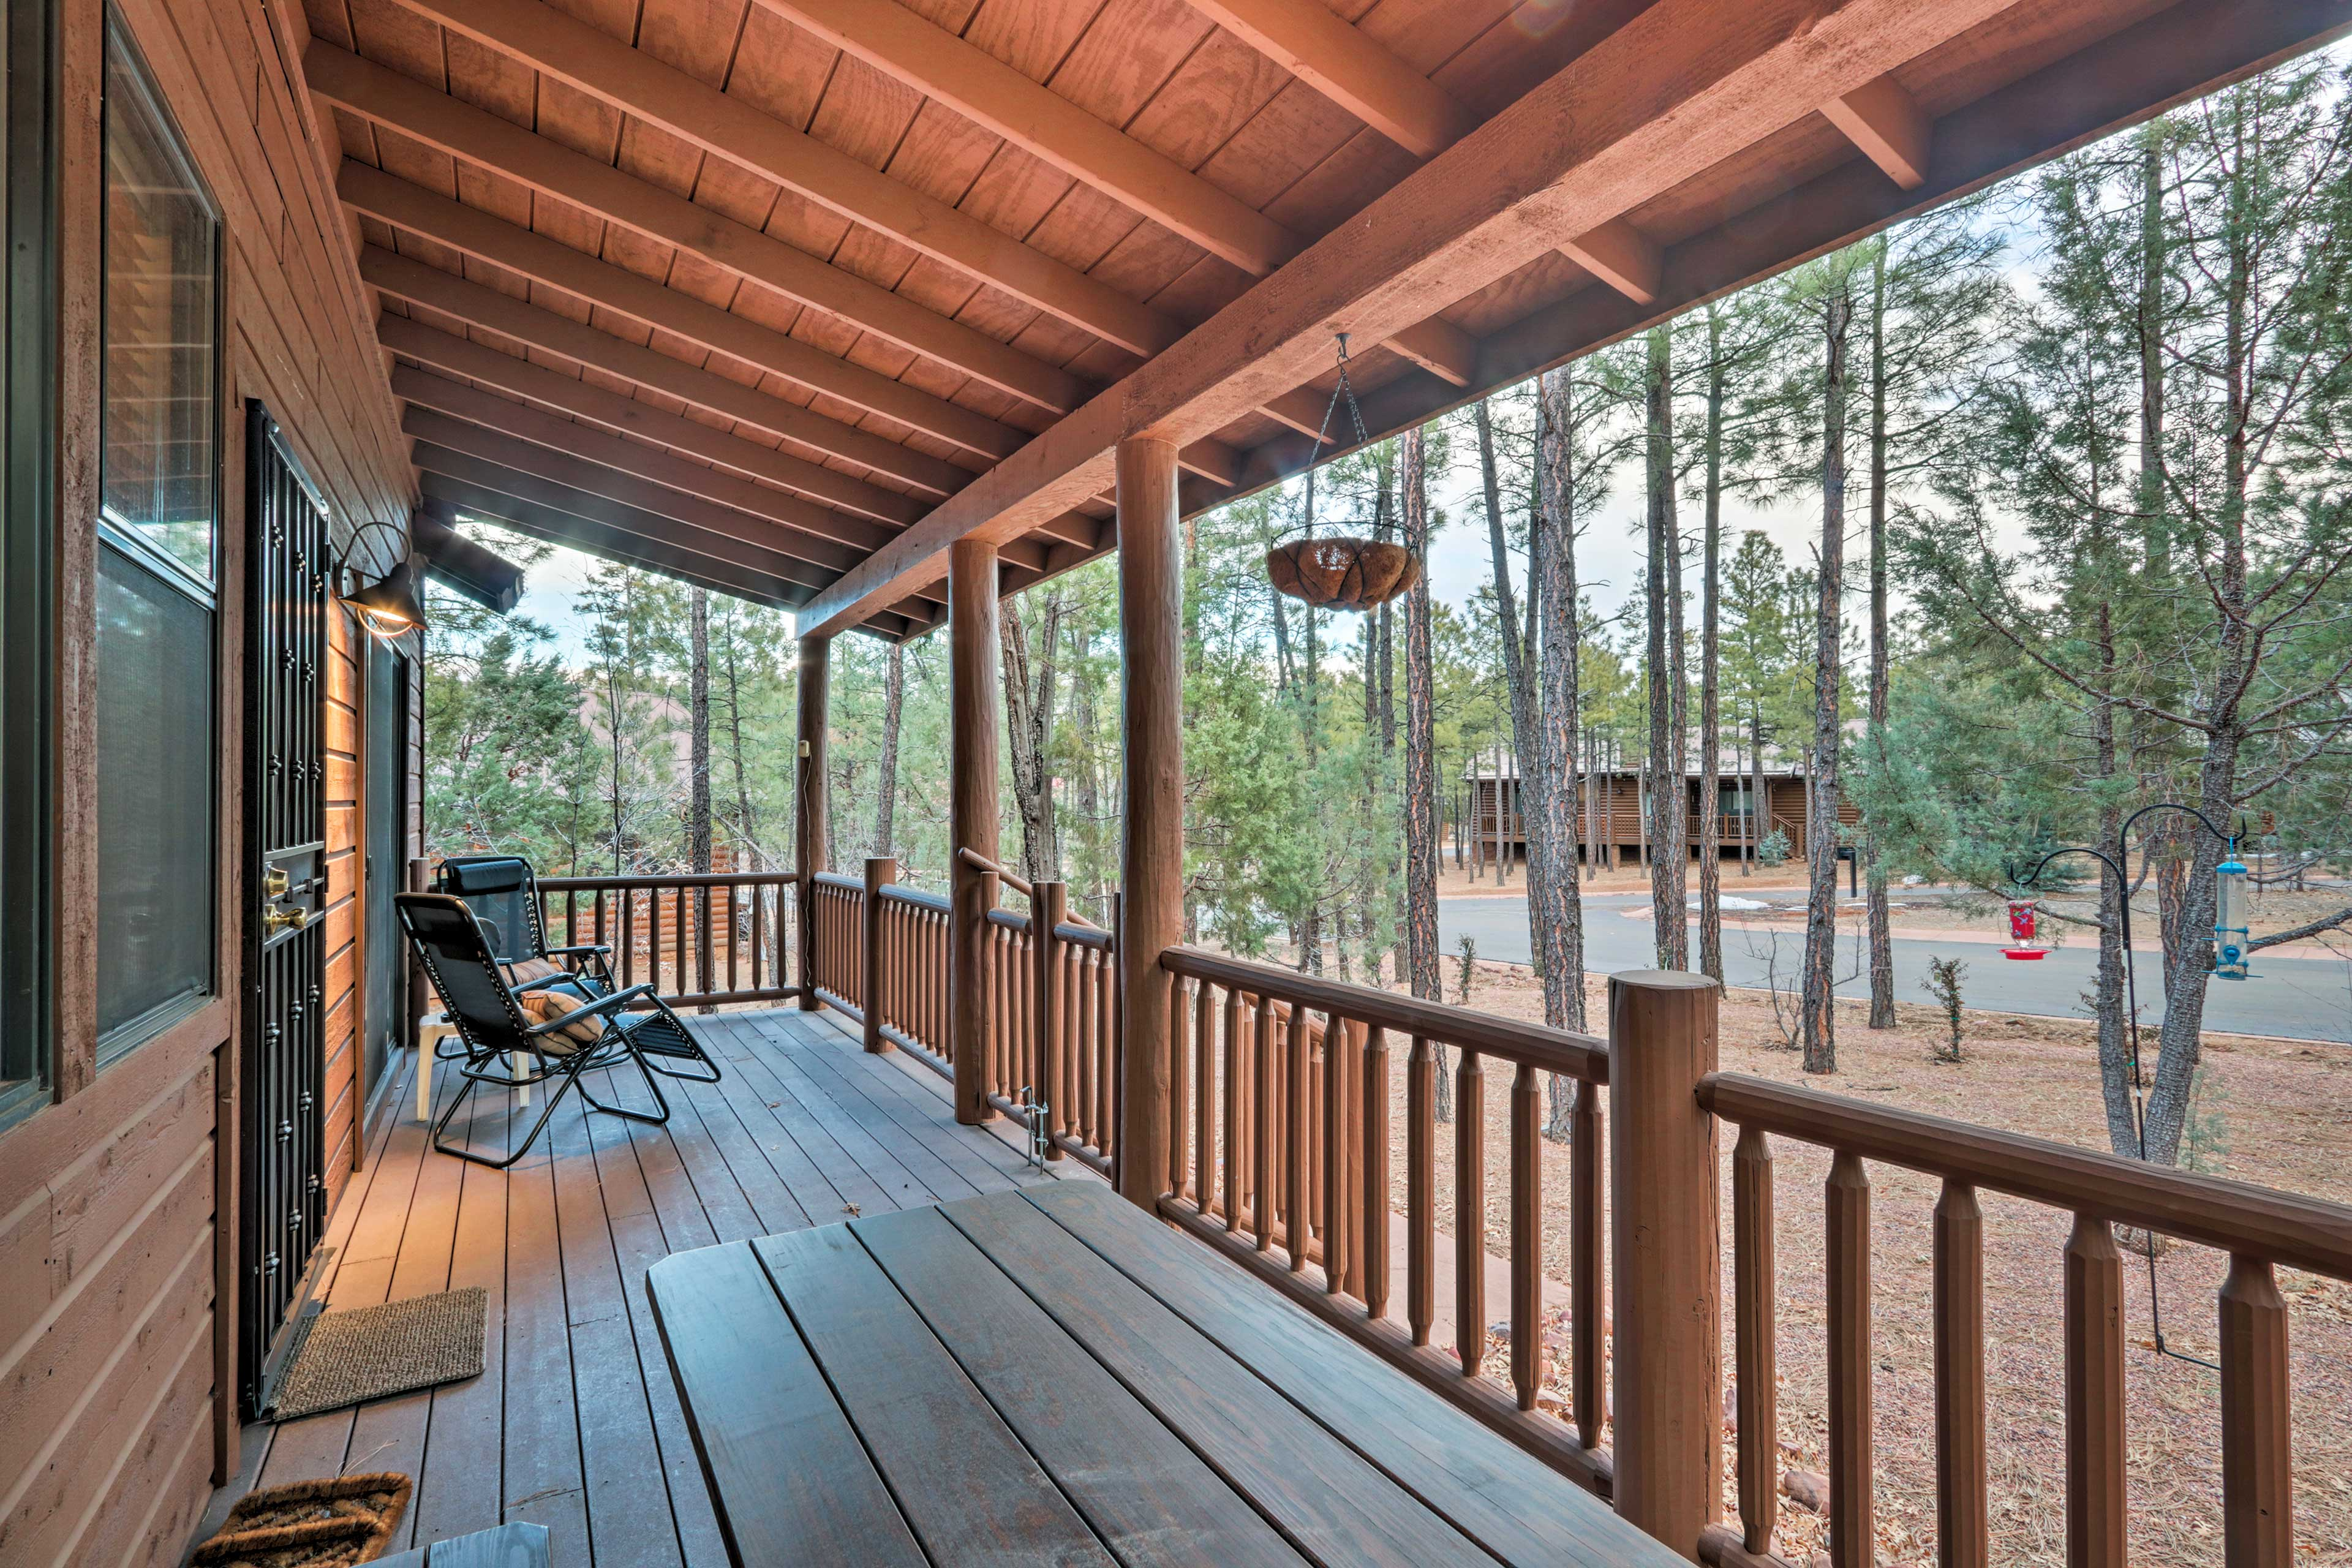 Spend mornings lounging on the deck.